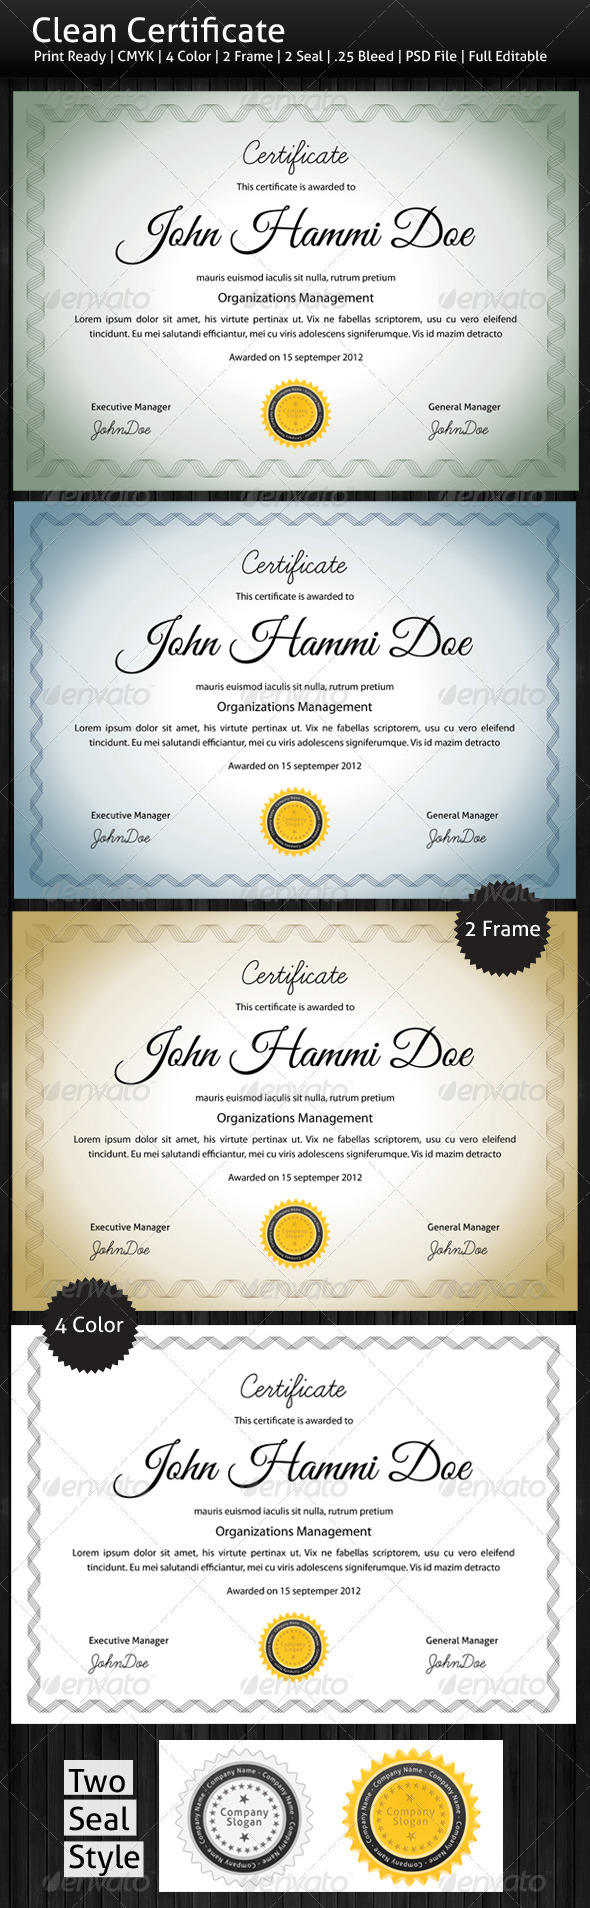 GraphicRiver Clean Certificate 3033056